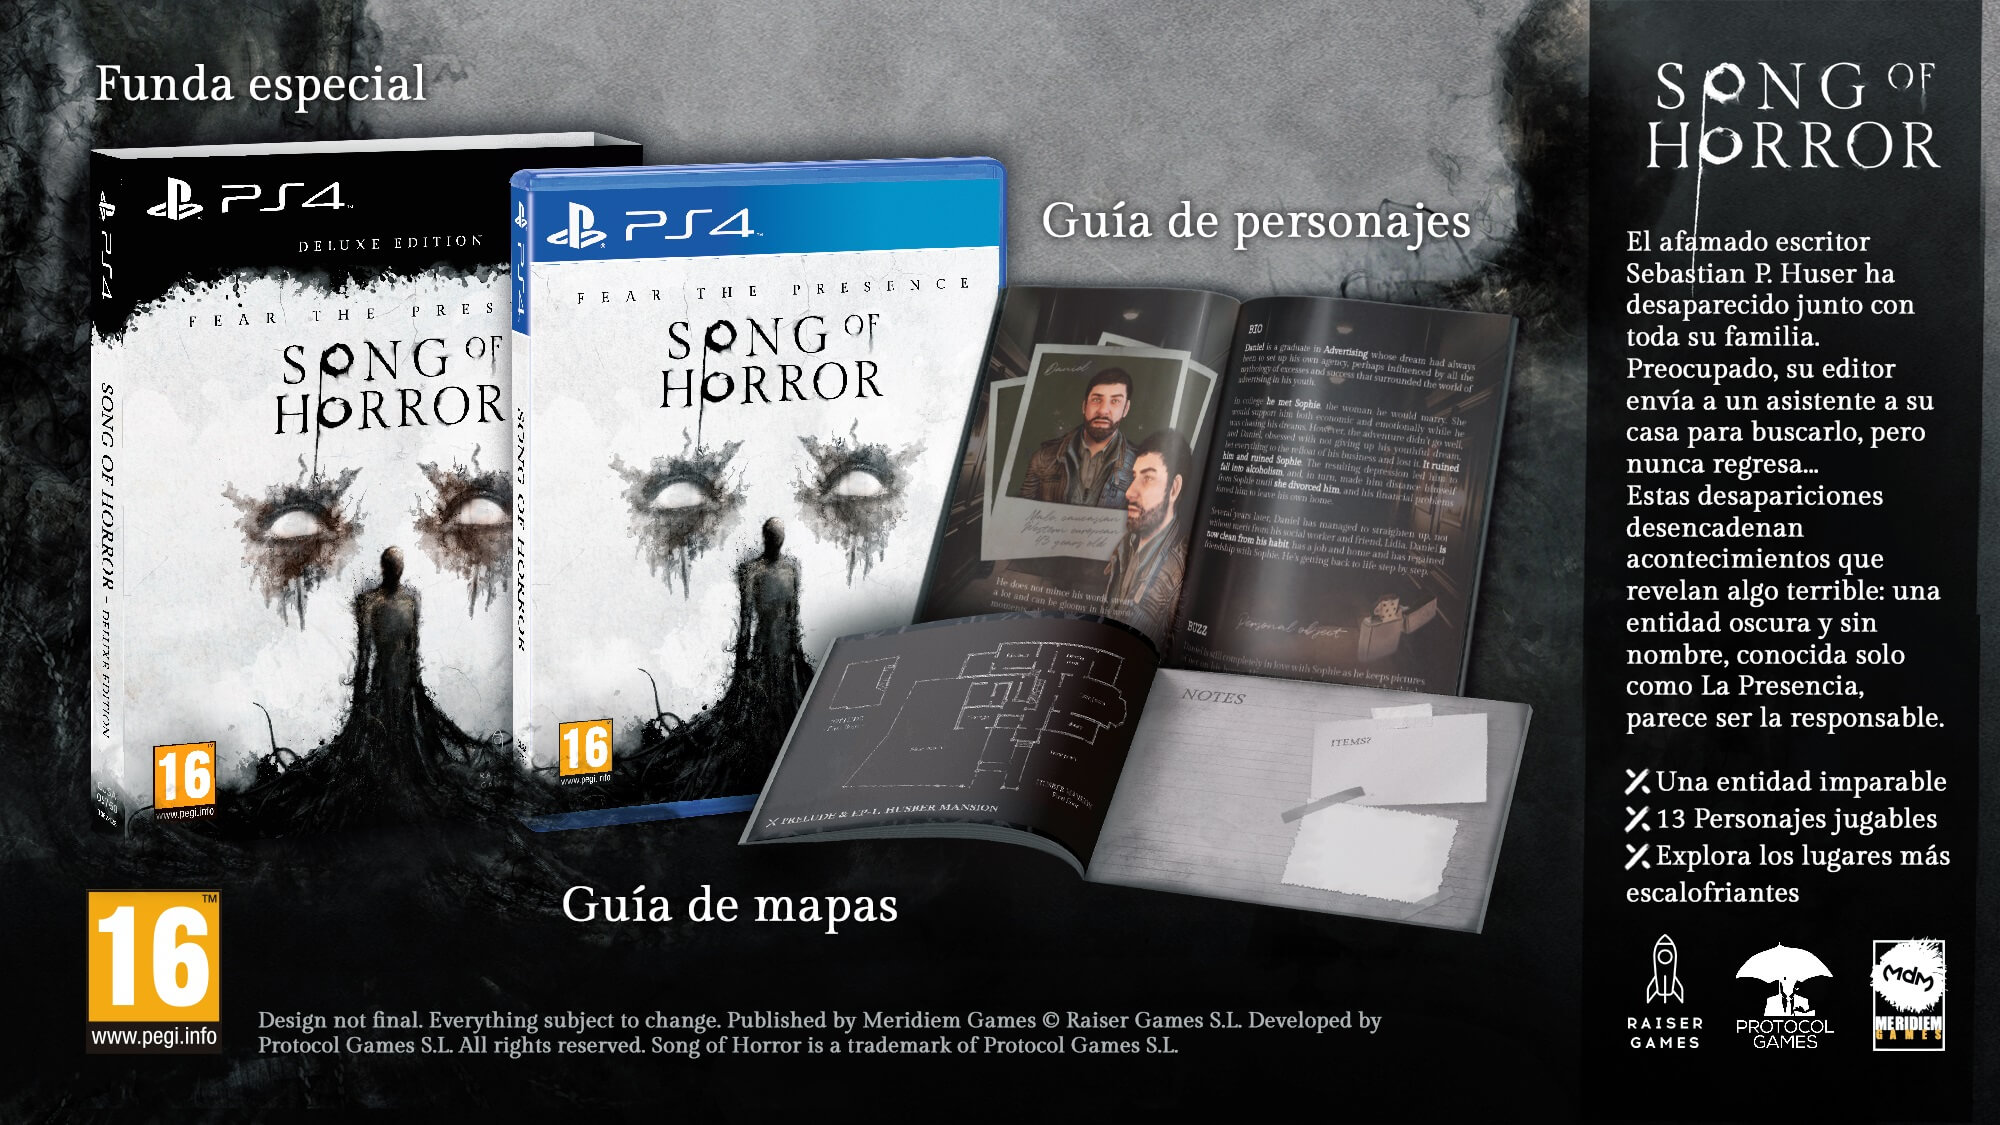 Song of Horror llegará a PS4 con una espectacular edición Deluxe